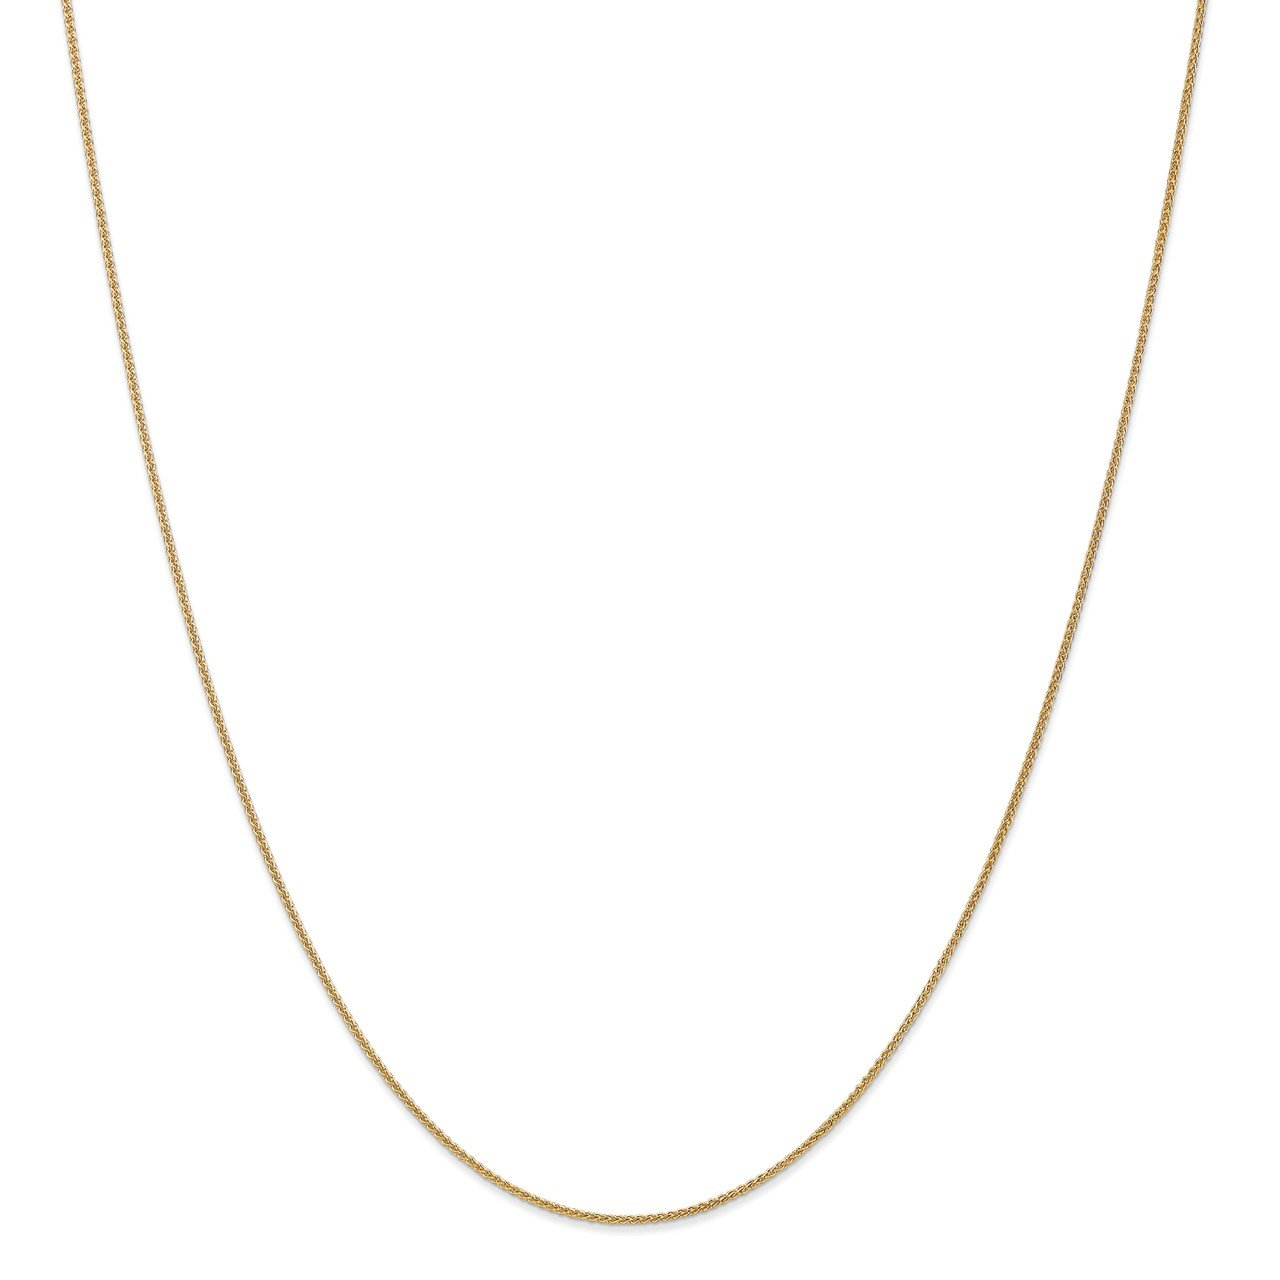 14k 1mm Spiga with Lobster Clasp Chain